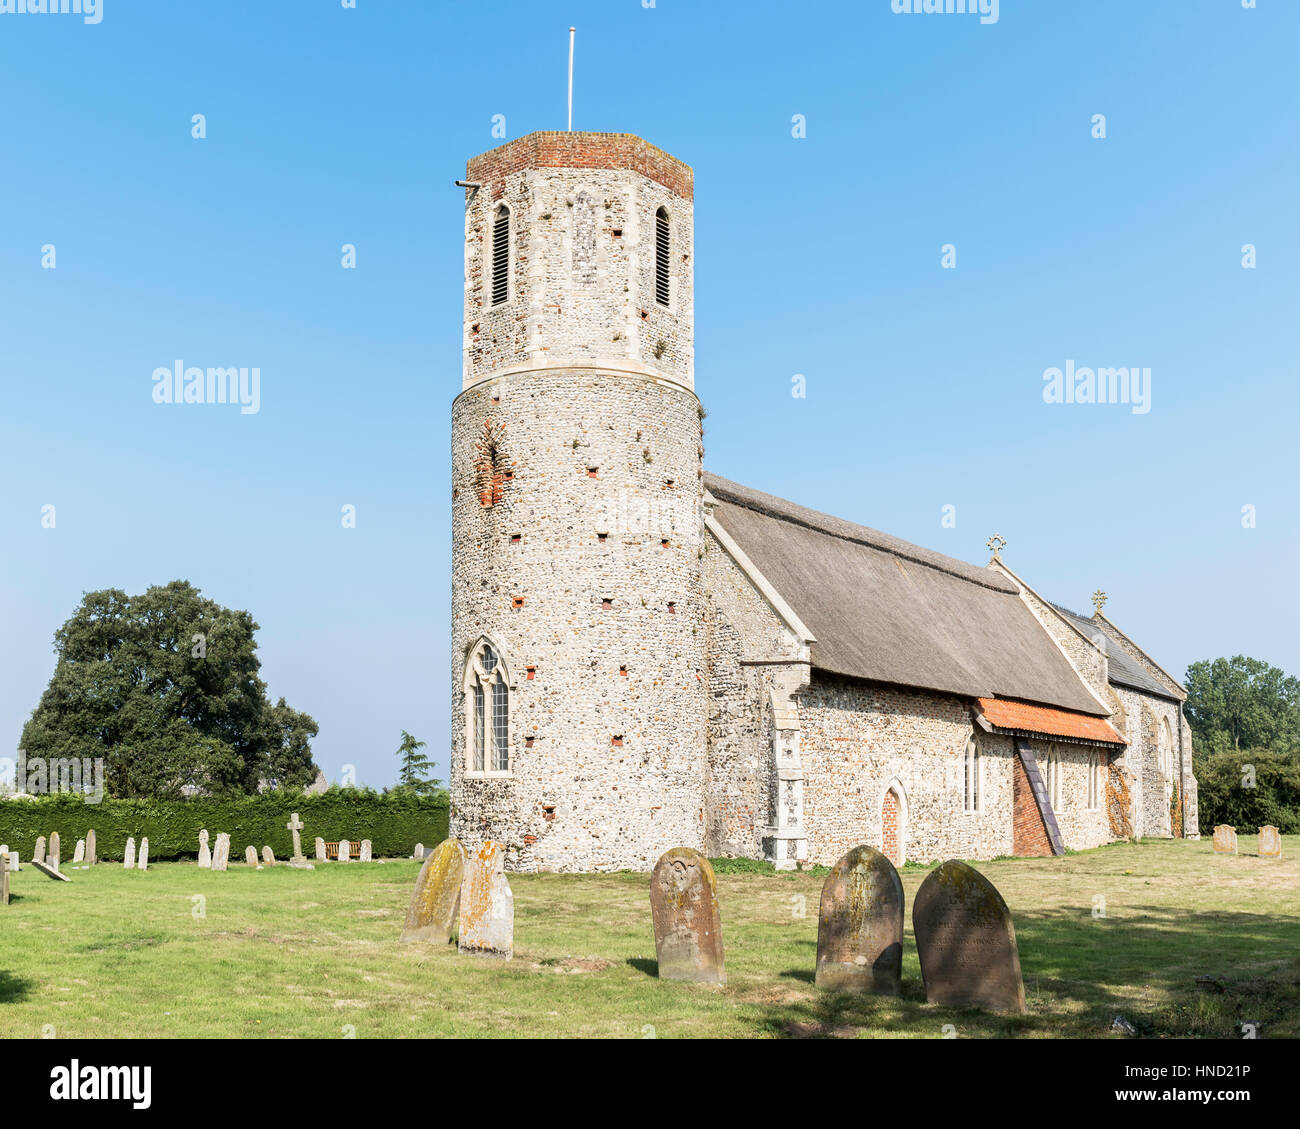 St. Mary's church, West Somerton, Norfolk UK - Stock Image